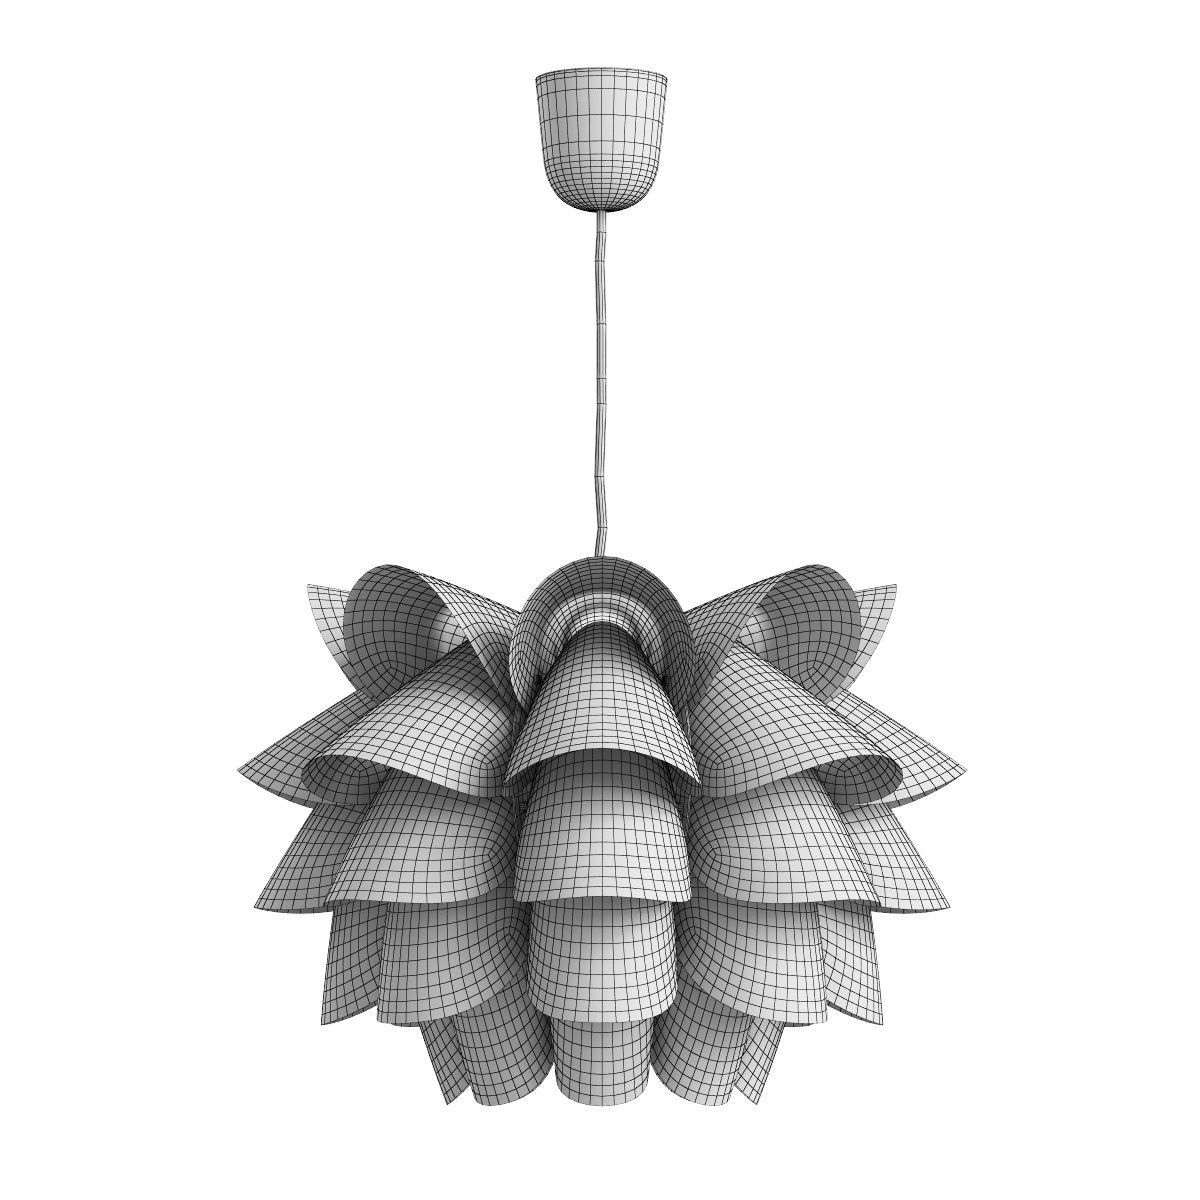 3d ikea knappa pendant lamp cgtrader ikea knappa pendant lamp 3d model max 2 mozeypictures Image collections